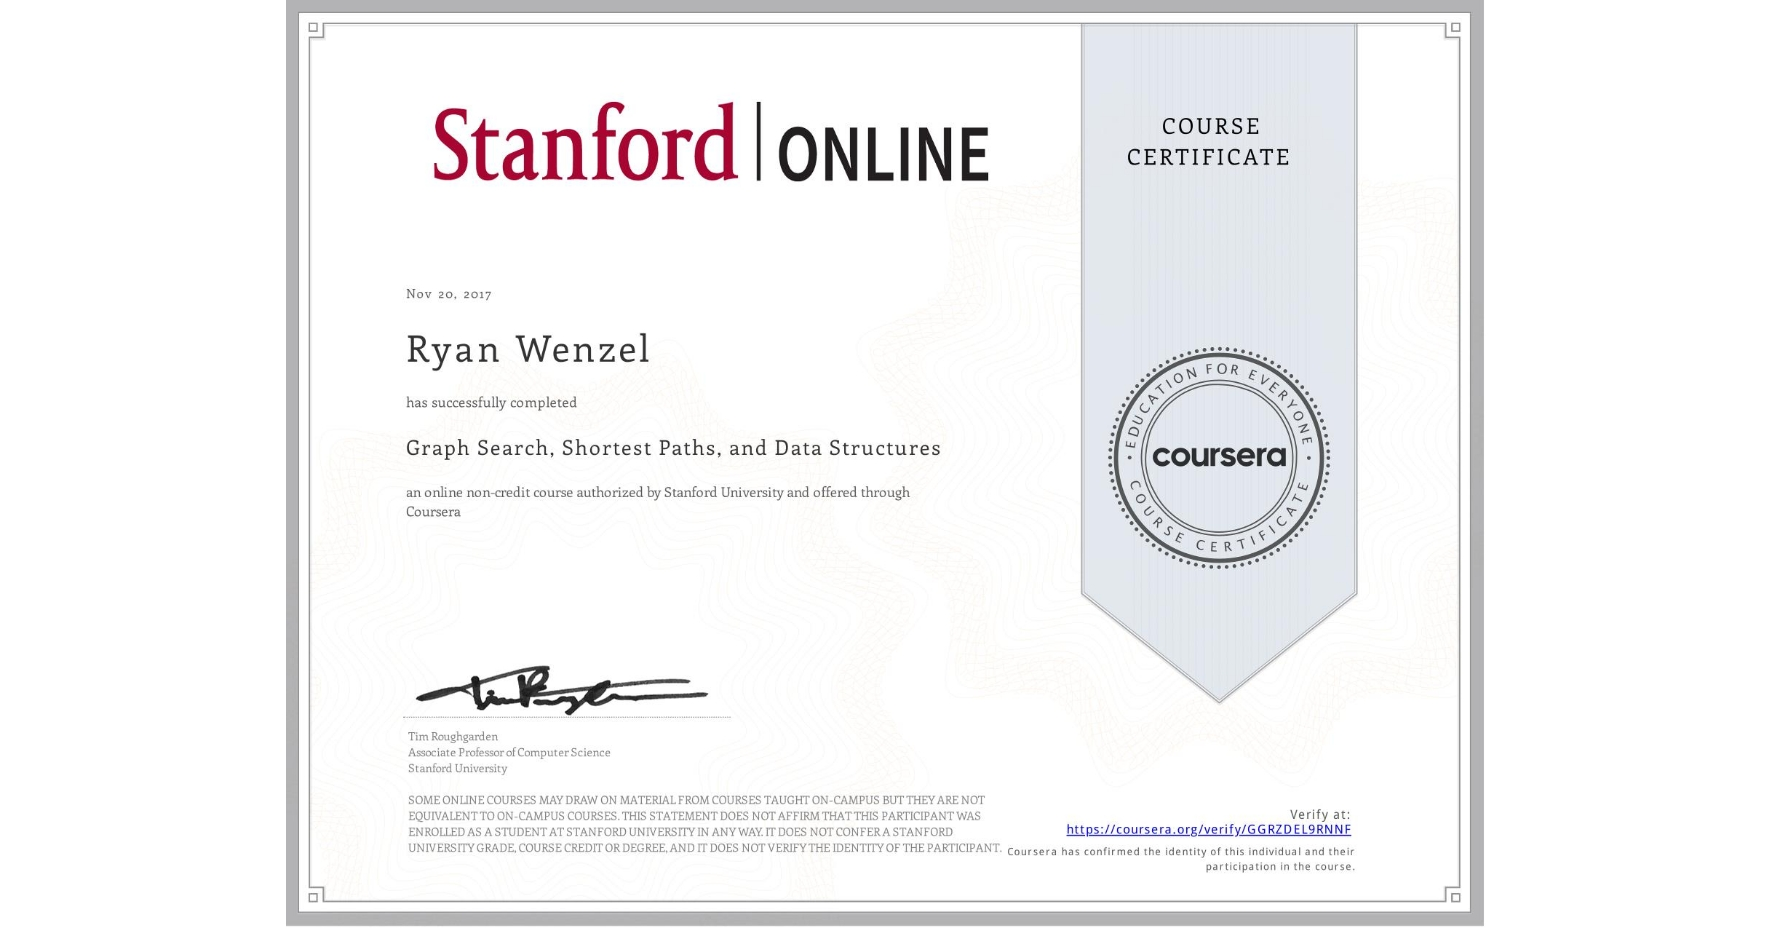 View certificate for Ryan Wenzel, Graph Search, Shortest Paths, and Data Structures, an online non-credit course authorized by Stanford University and offered through Coursera